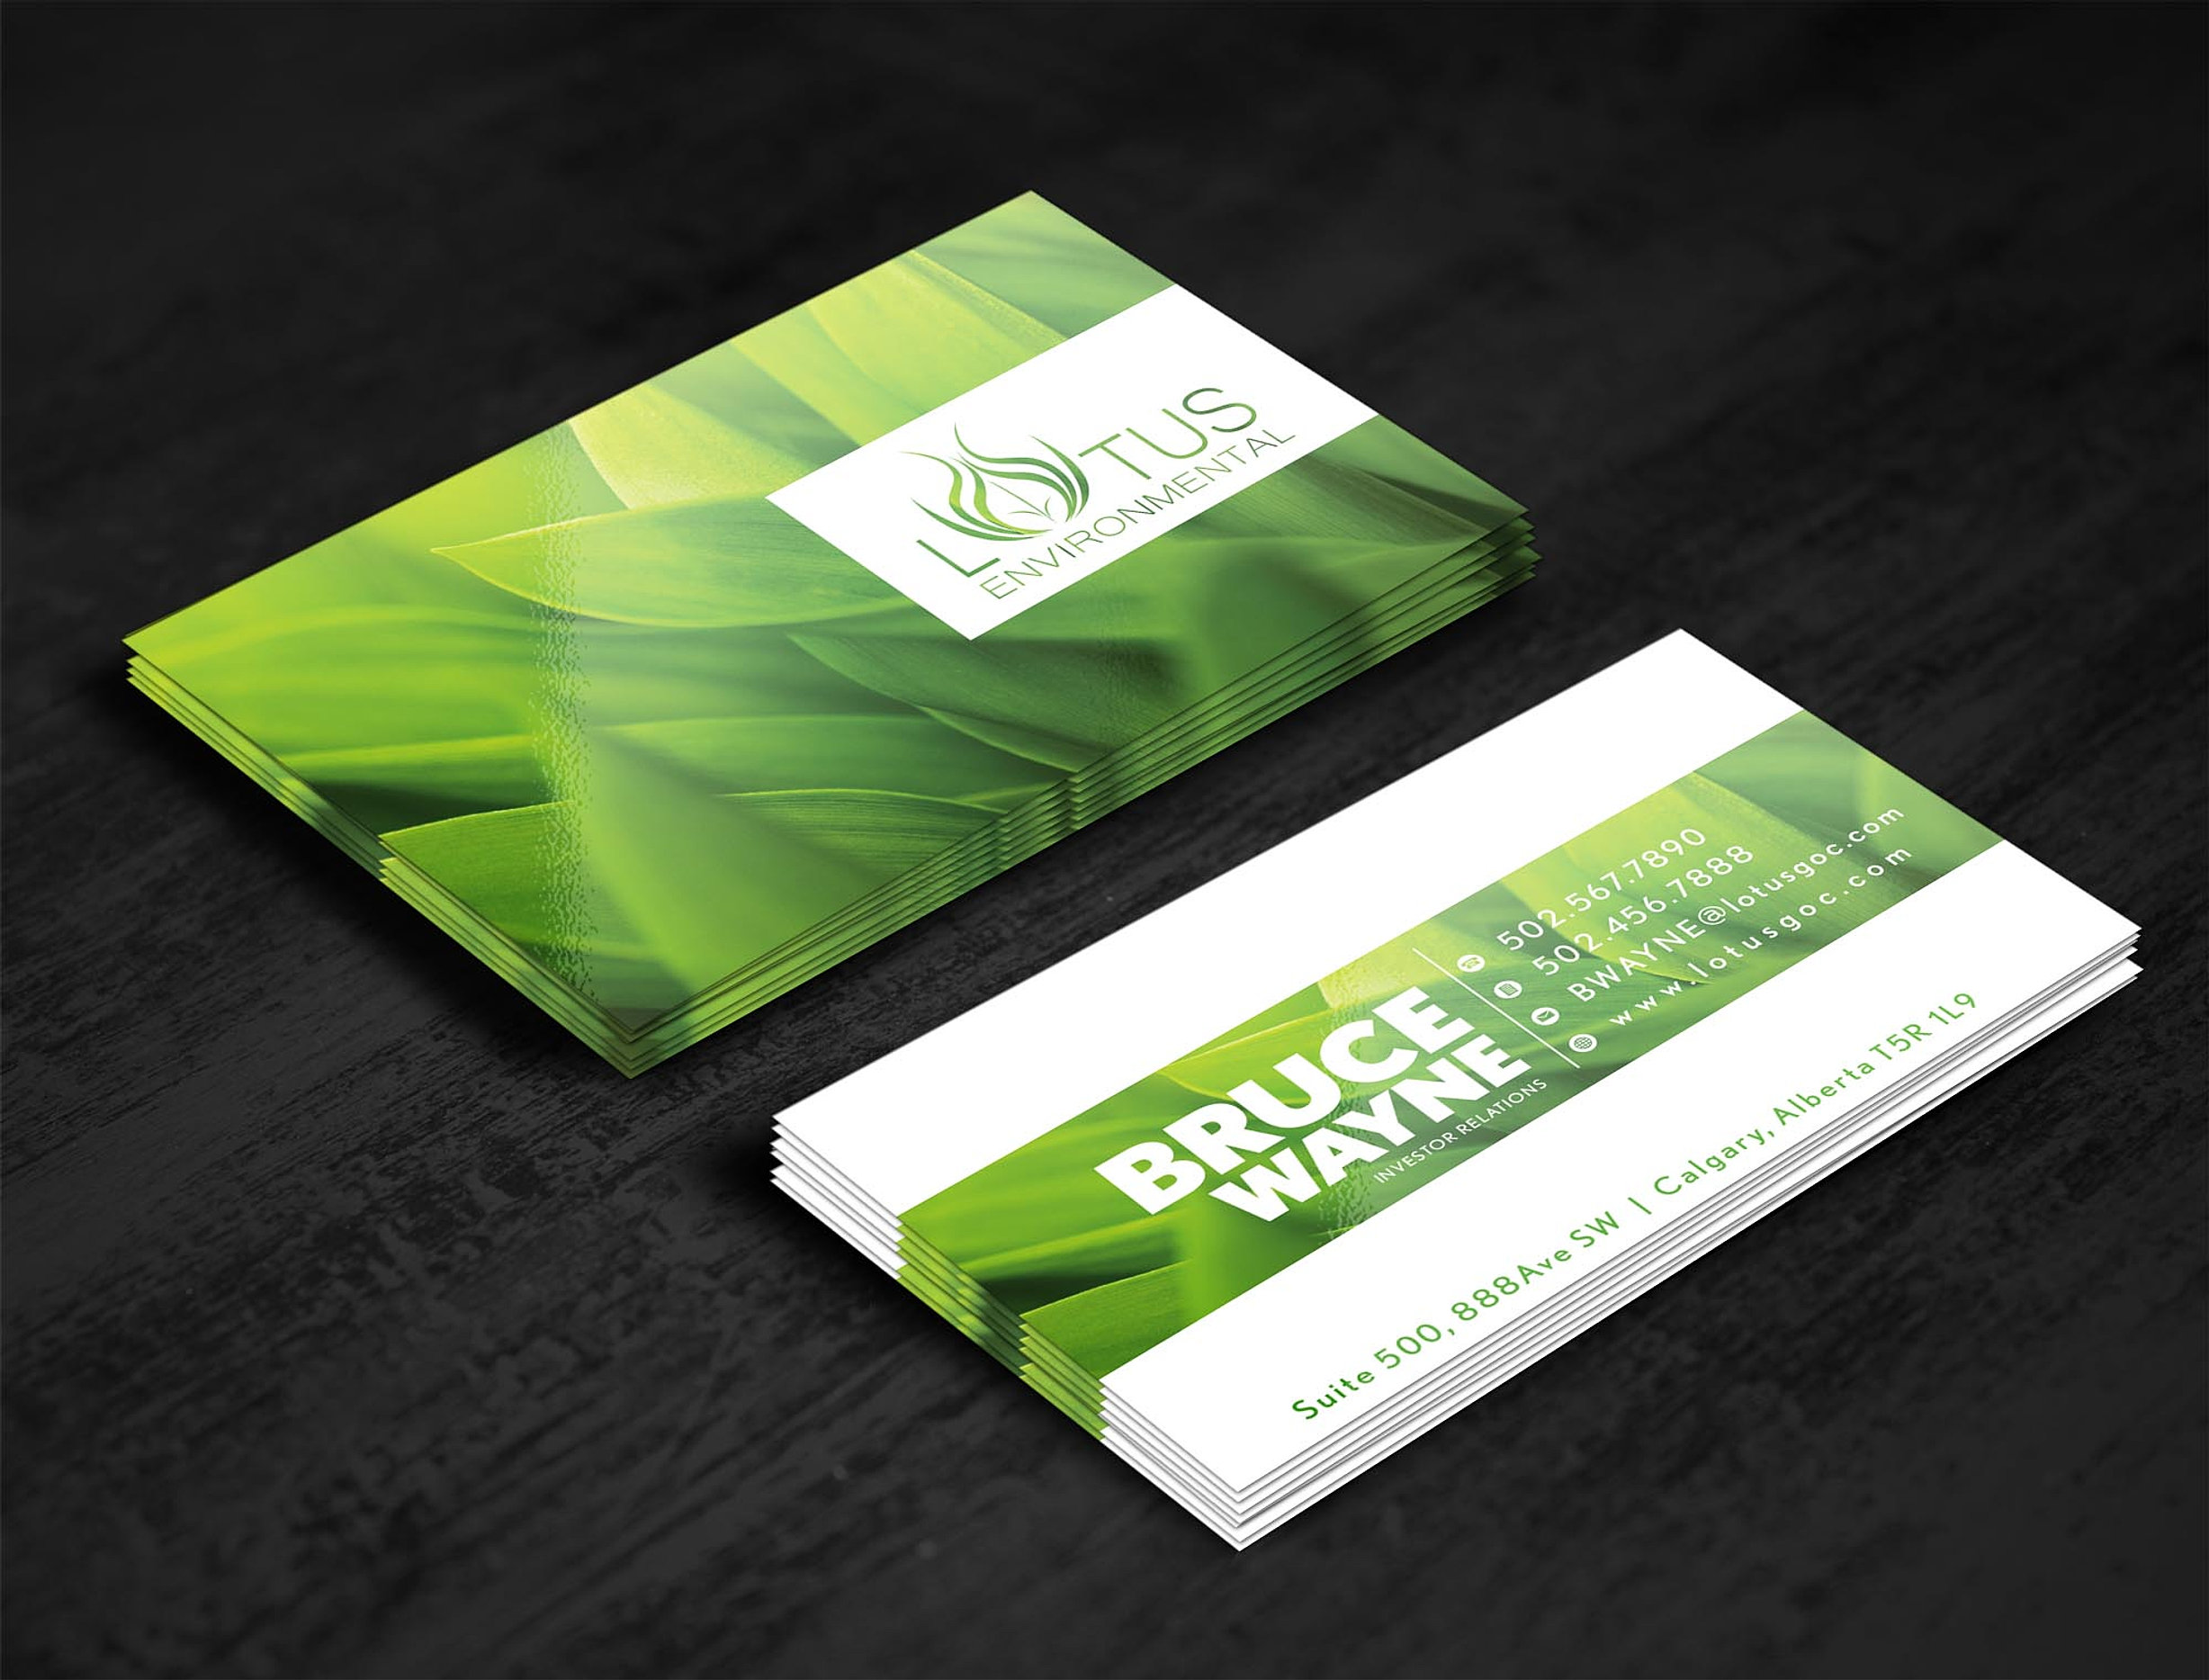 Bcreative business cards business card mock up 08 colourmoves Images